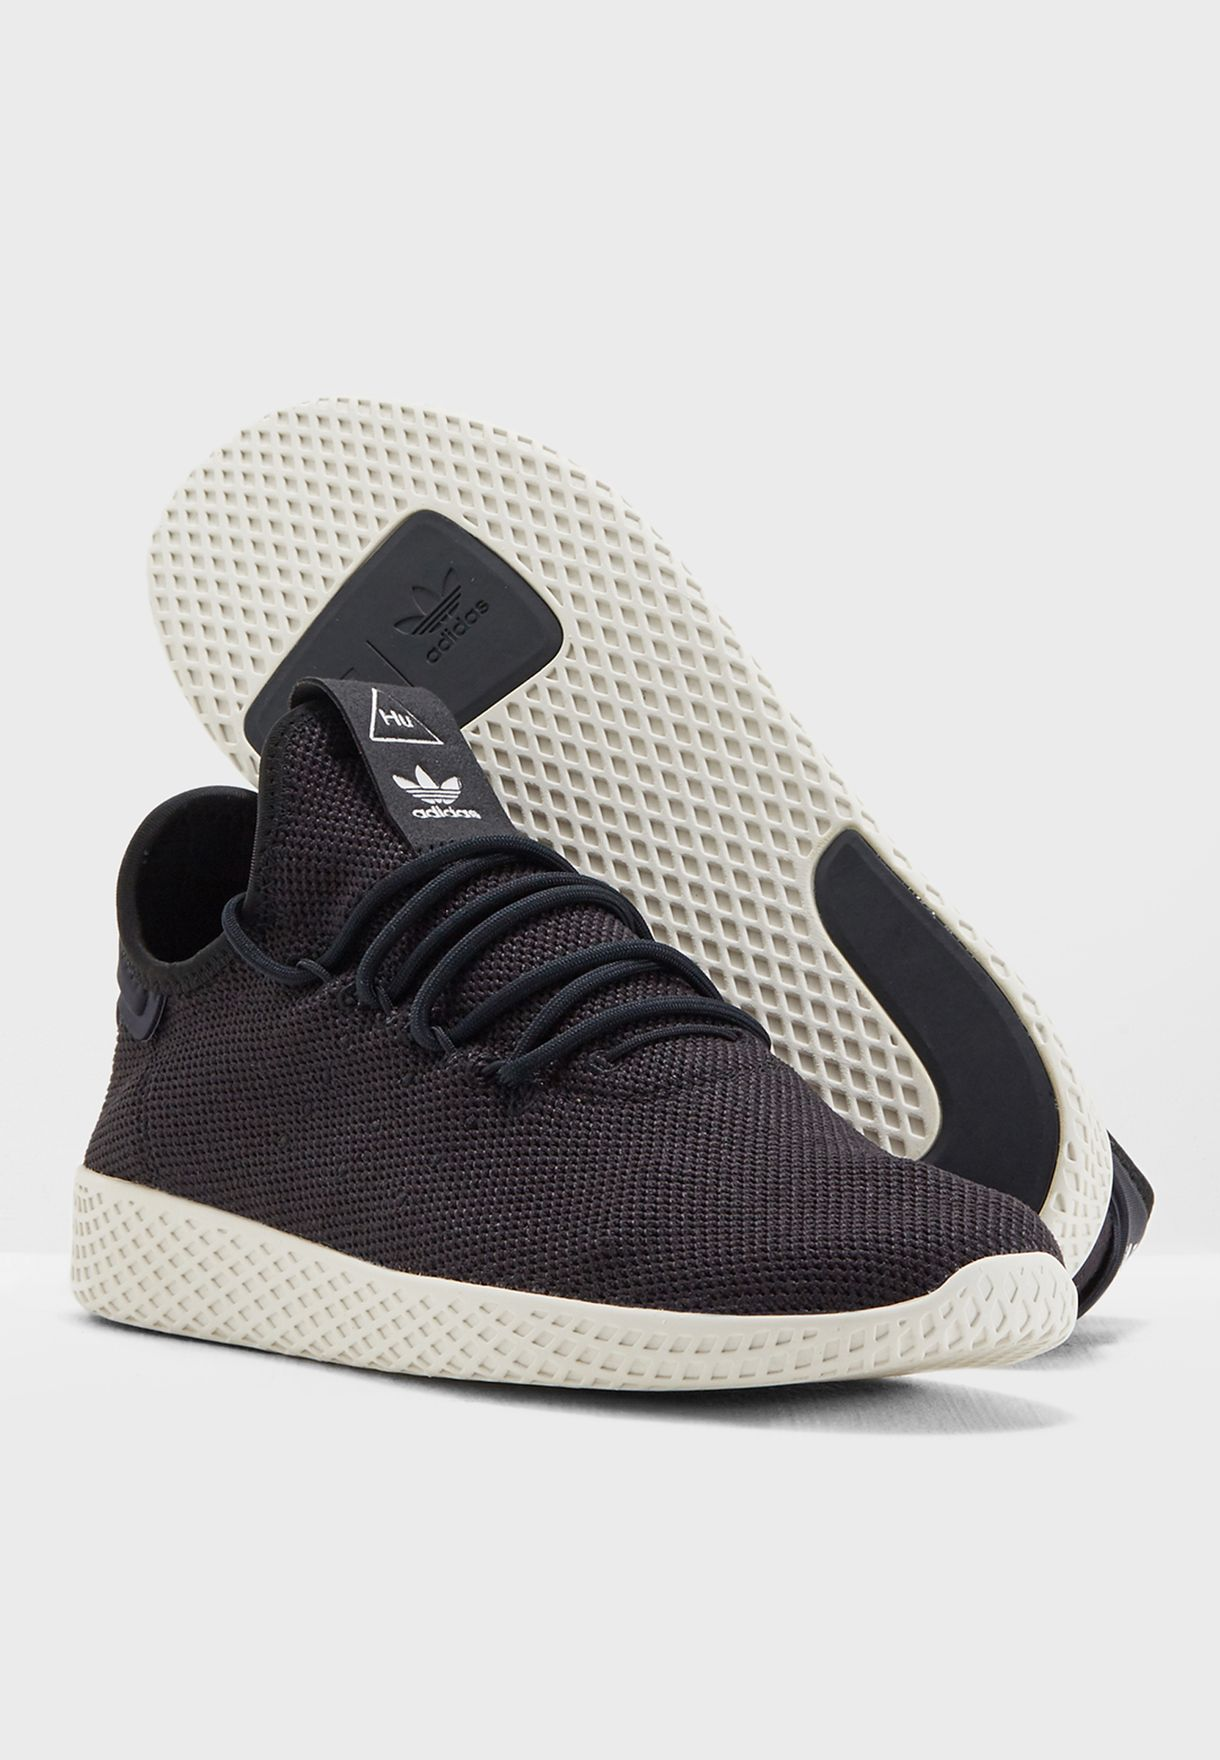 a76dbe4de1705 Shop adidas Originals black Pharrell Williams Tennis Hu AQ1056 for ...